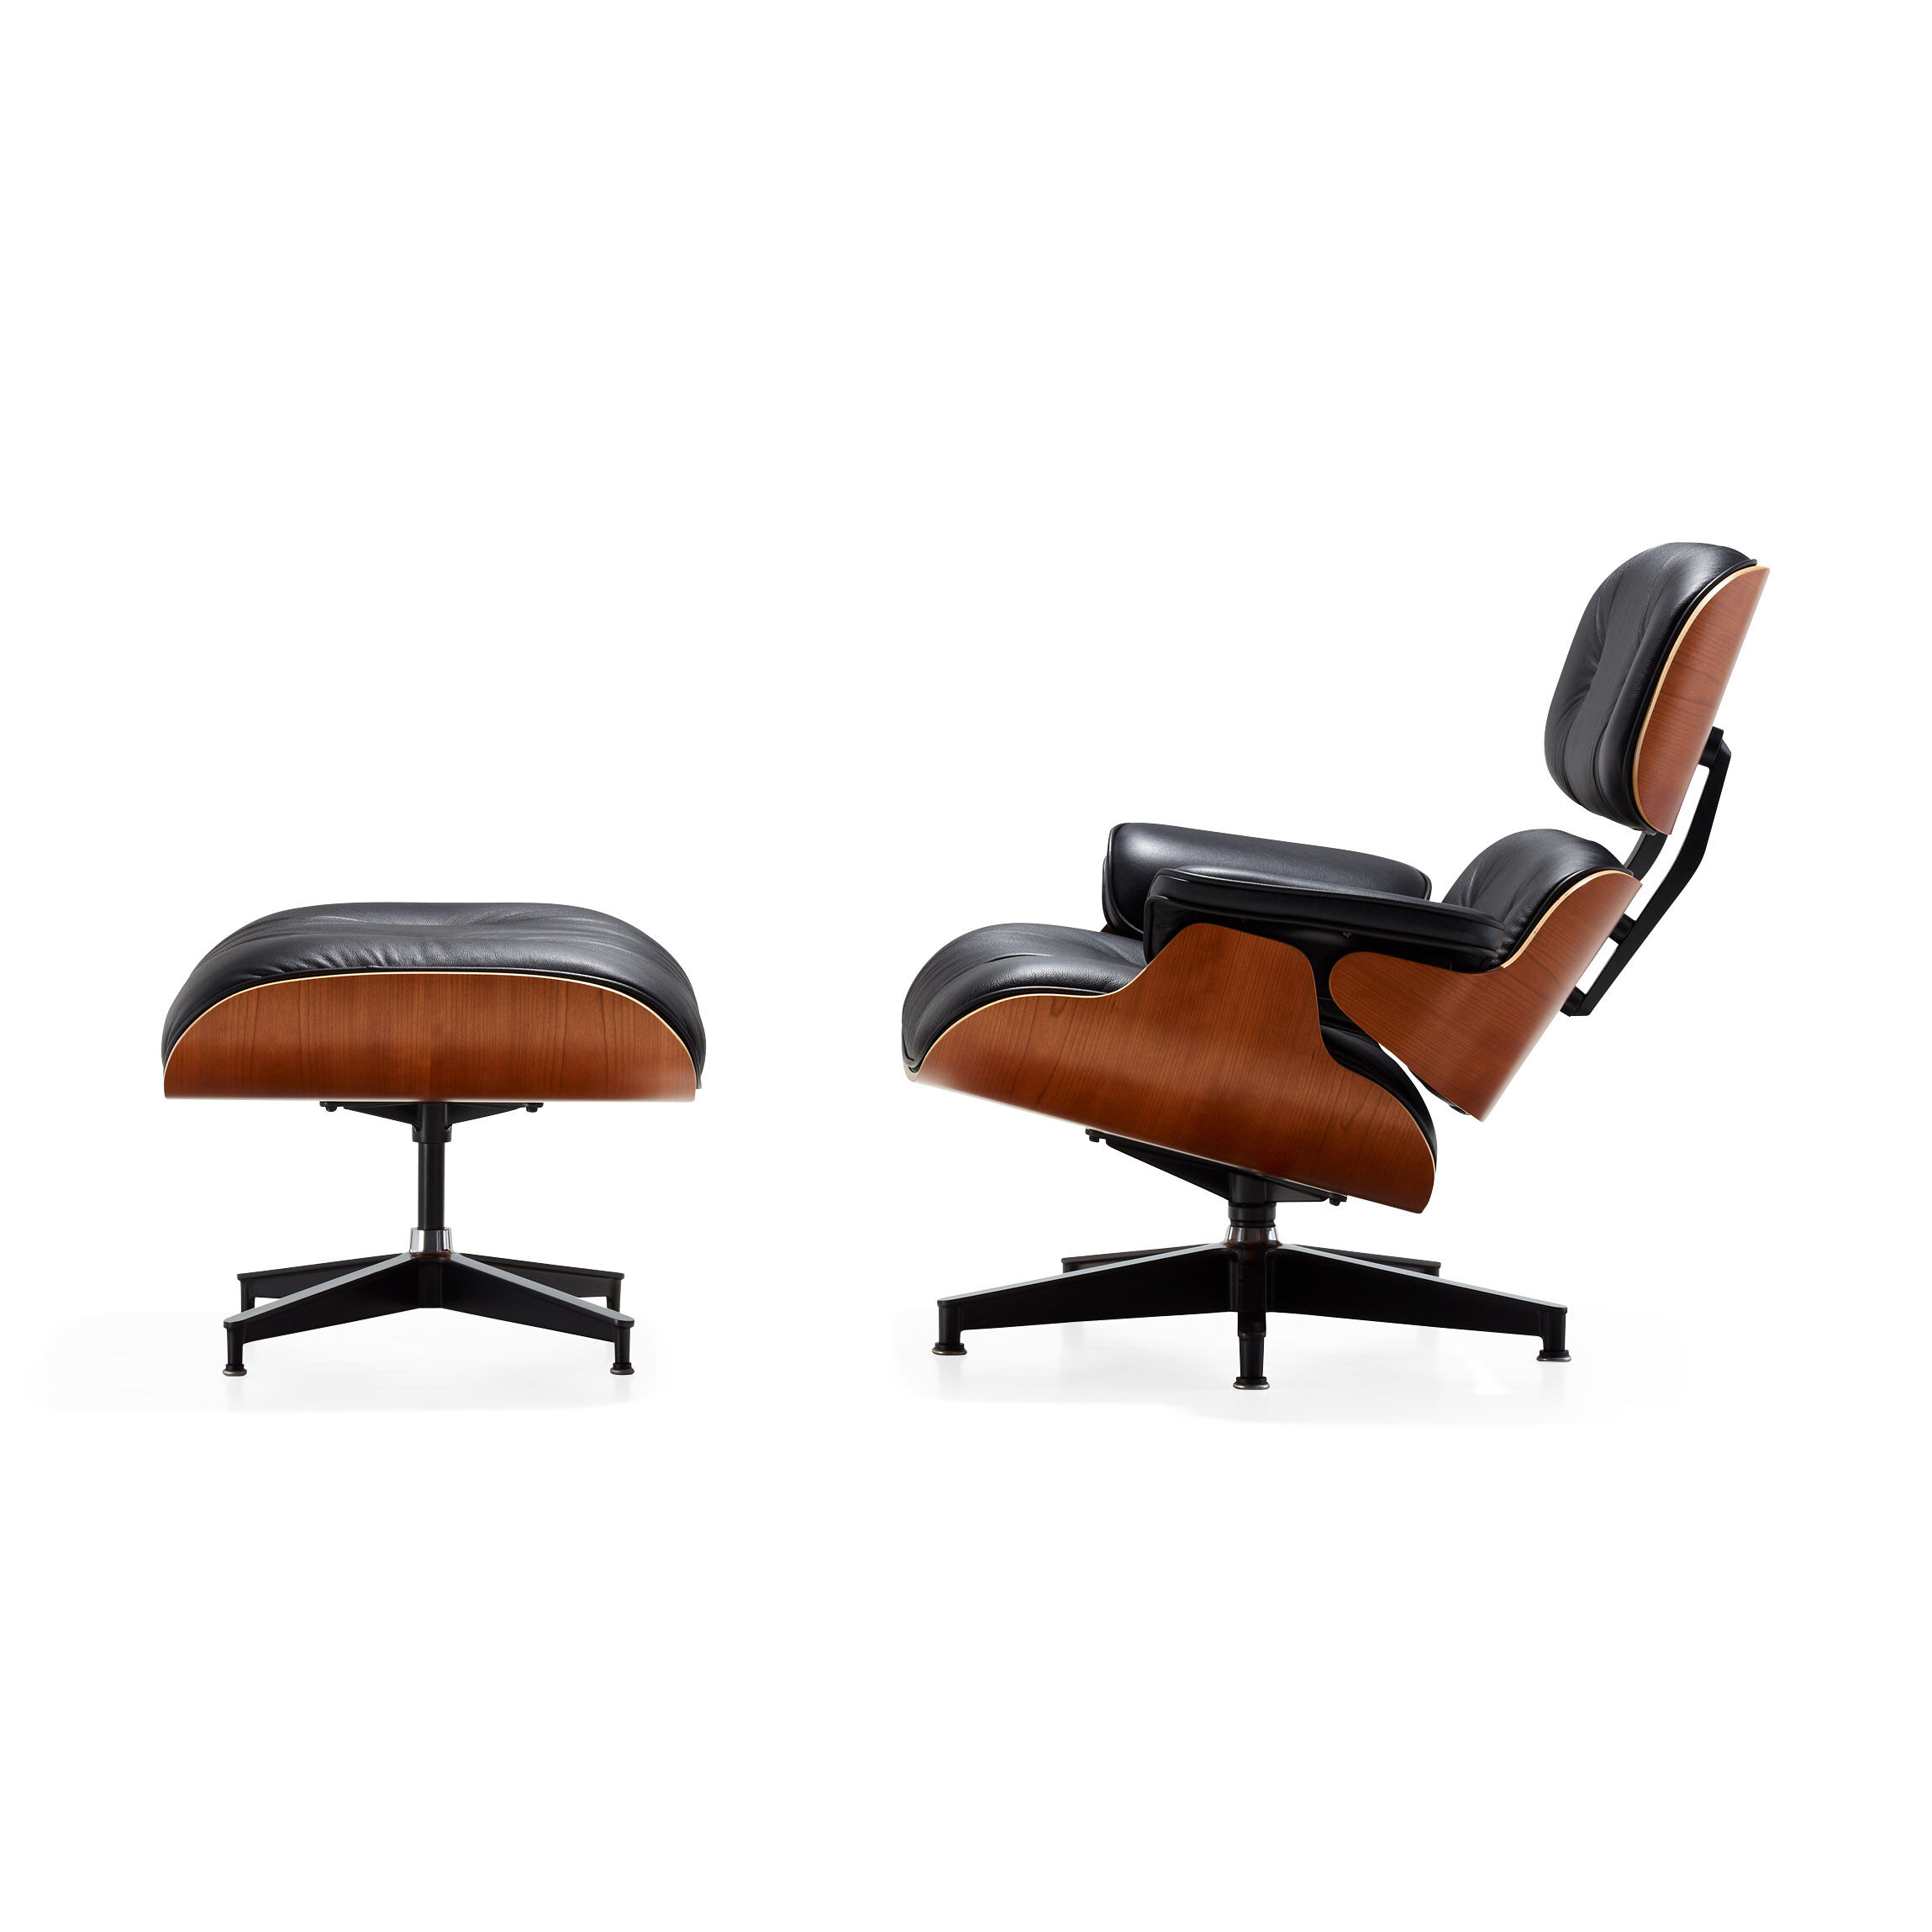 Lounge chair for office Gray Leather Eames Lounge Chair With Ottoman In Color Blackcherry Moma Design Store Eames Lounge Chair With Ottoman Moma Design Store